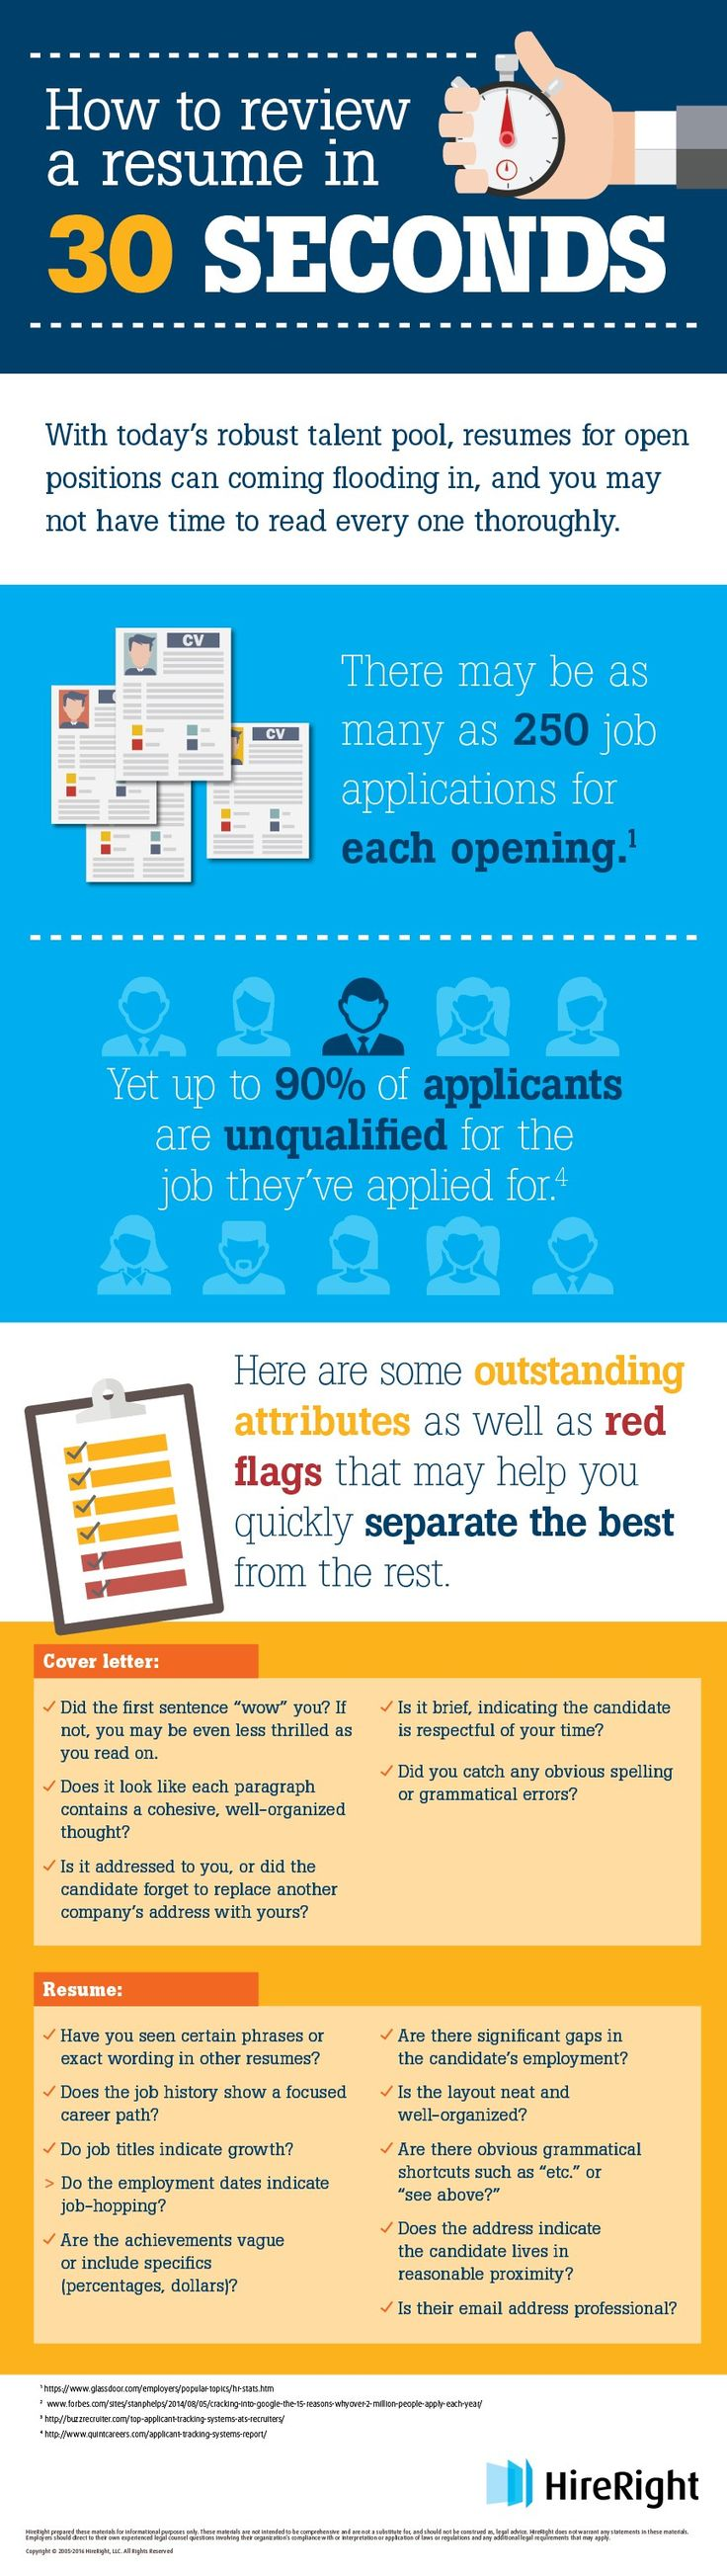 How To Review A Resume In 30 Seconds Infographic